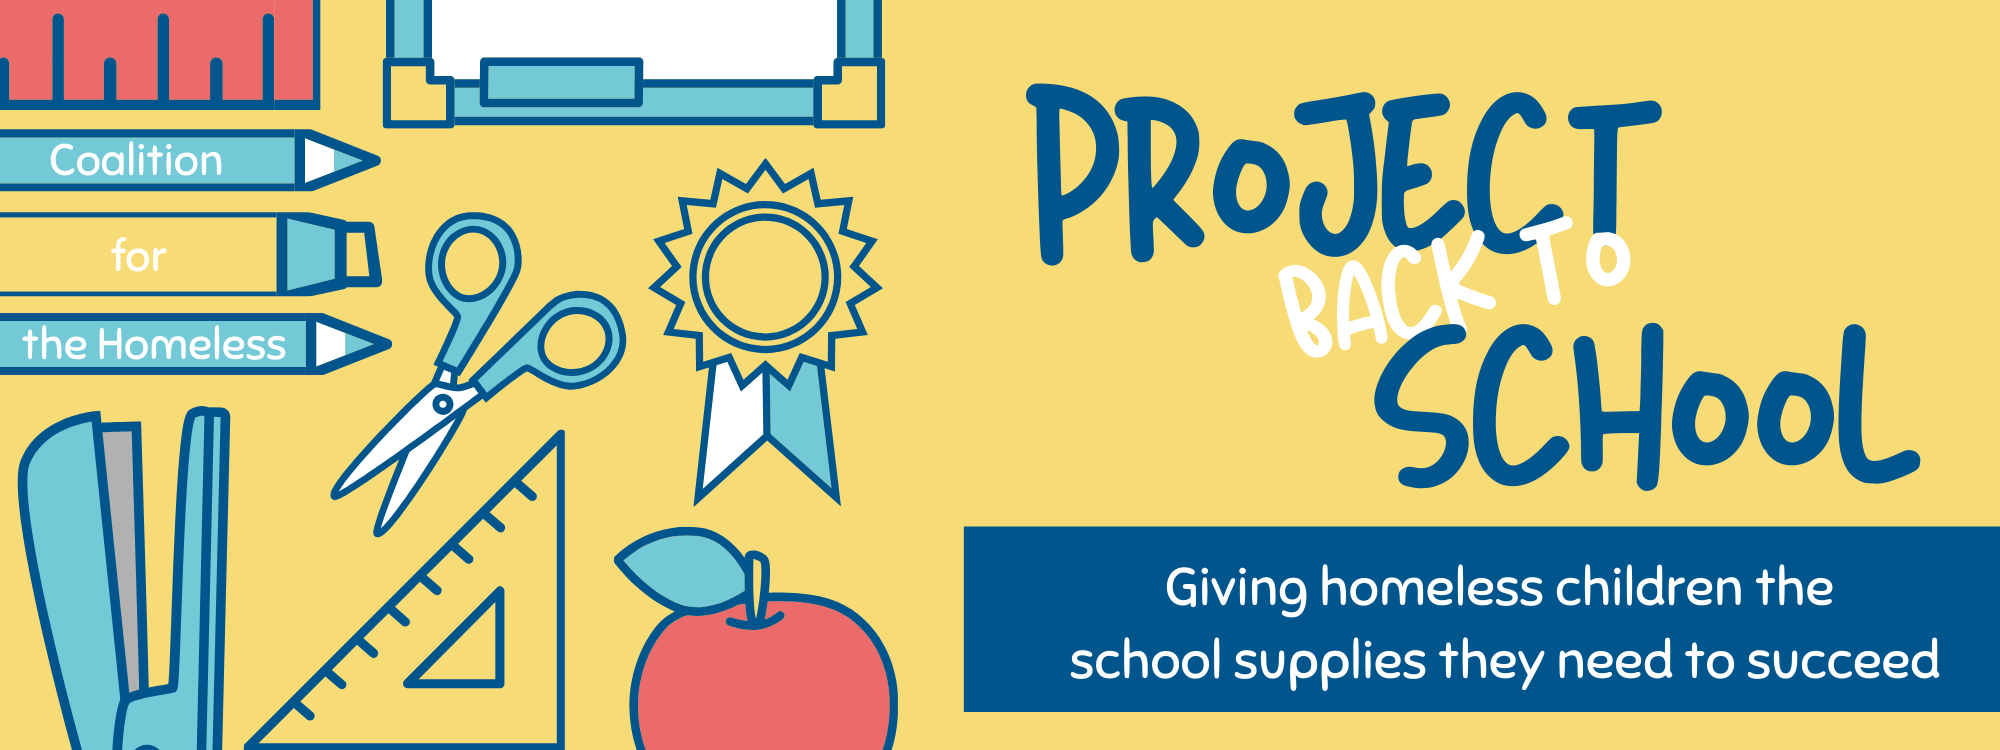 2020 Project: Back to School